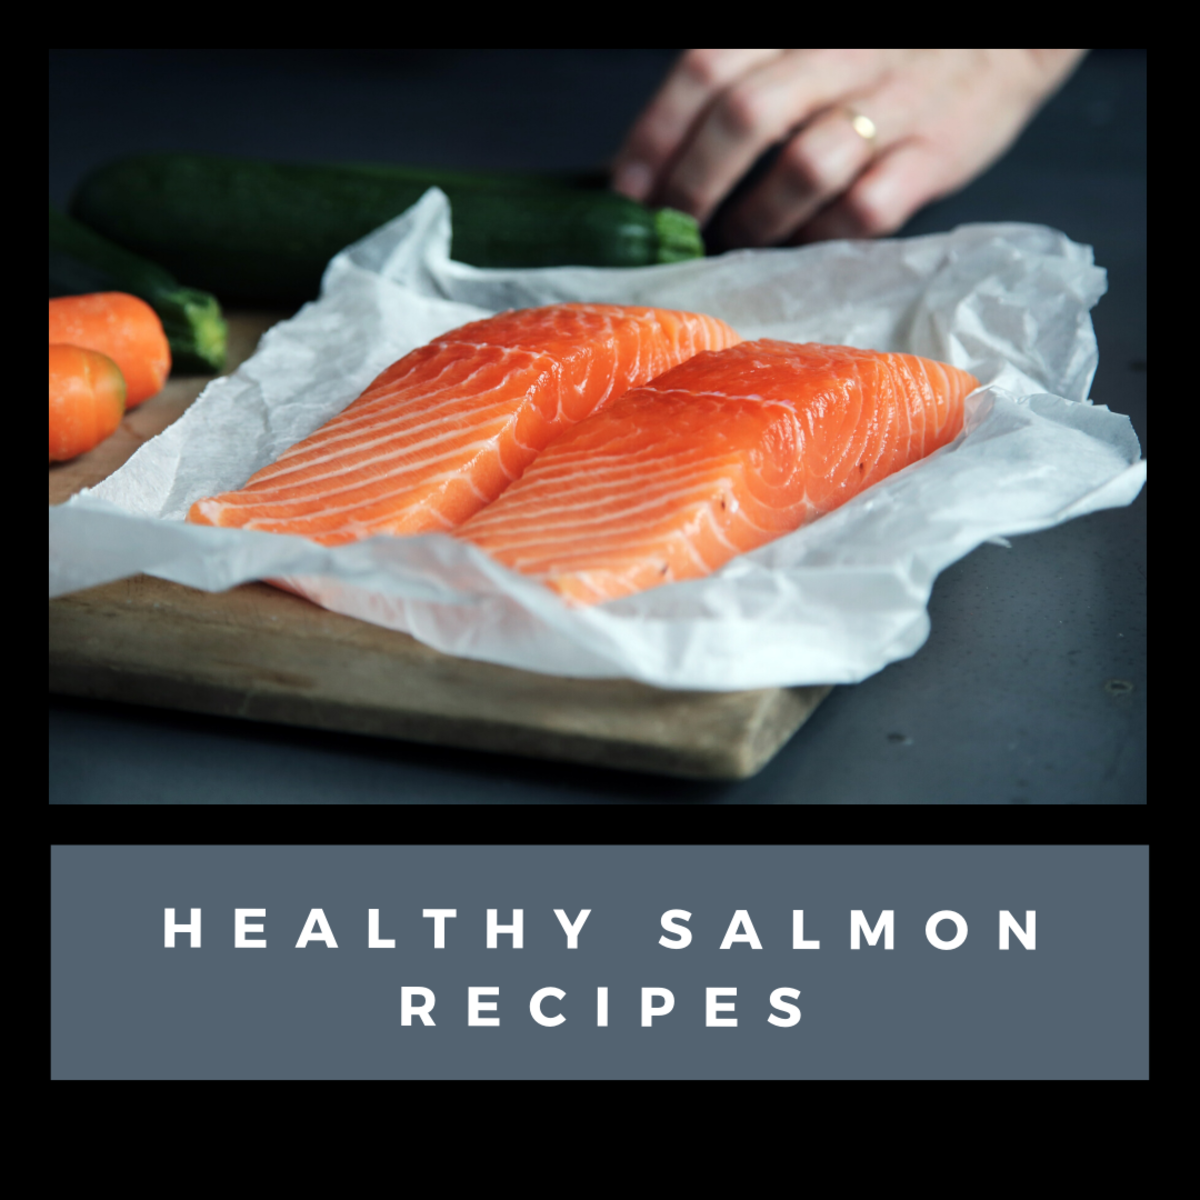 Many people cook salmon the same way every time. This article will help you create fresh new dishes the whole family can enjoy!